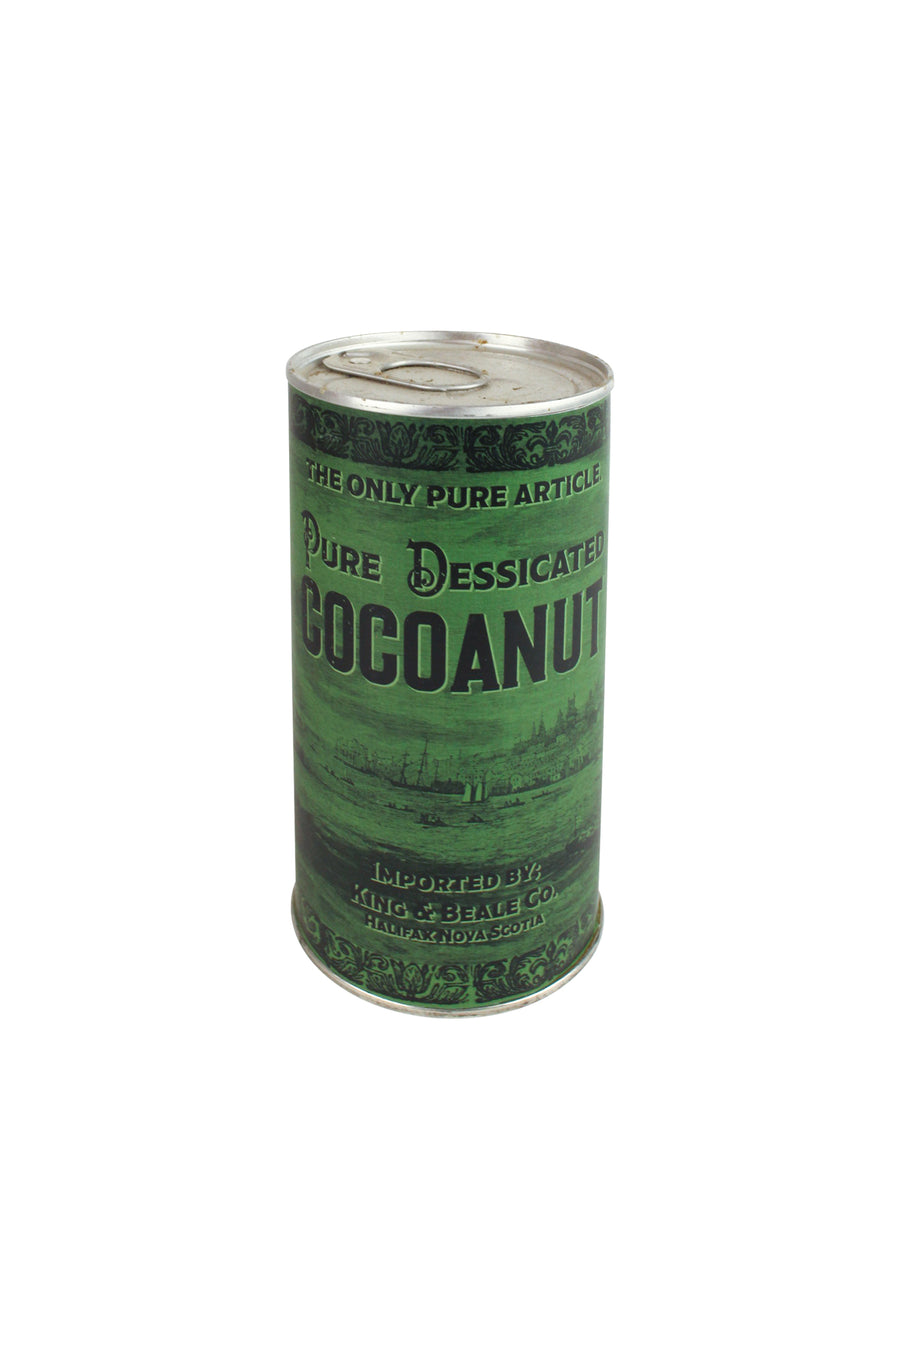 Canned Cocoanut